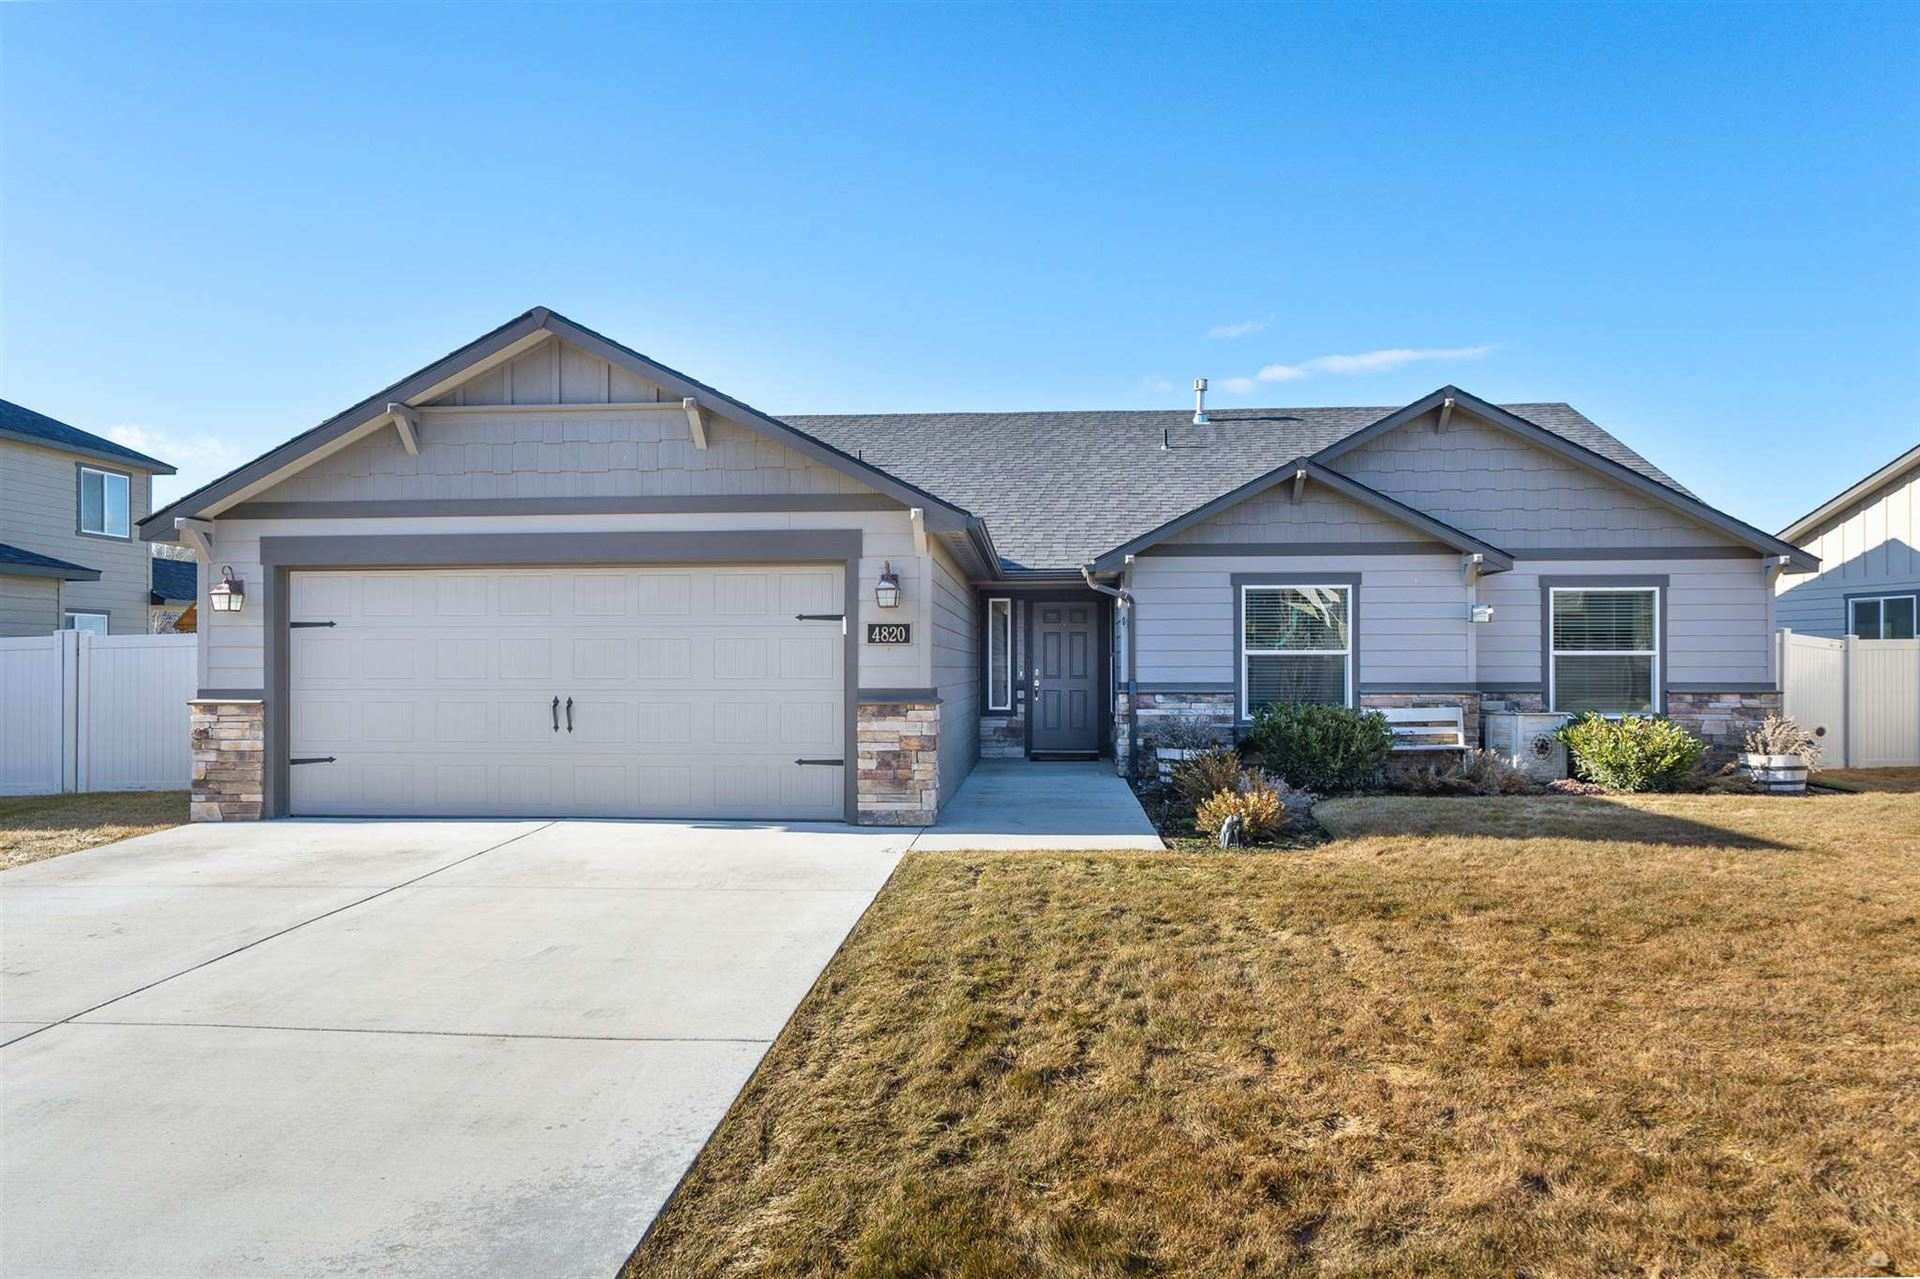 4820 S Lapwai Ln, Spokane Valley, WA 99206 - #: 202111866